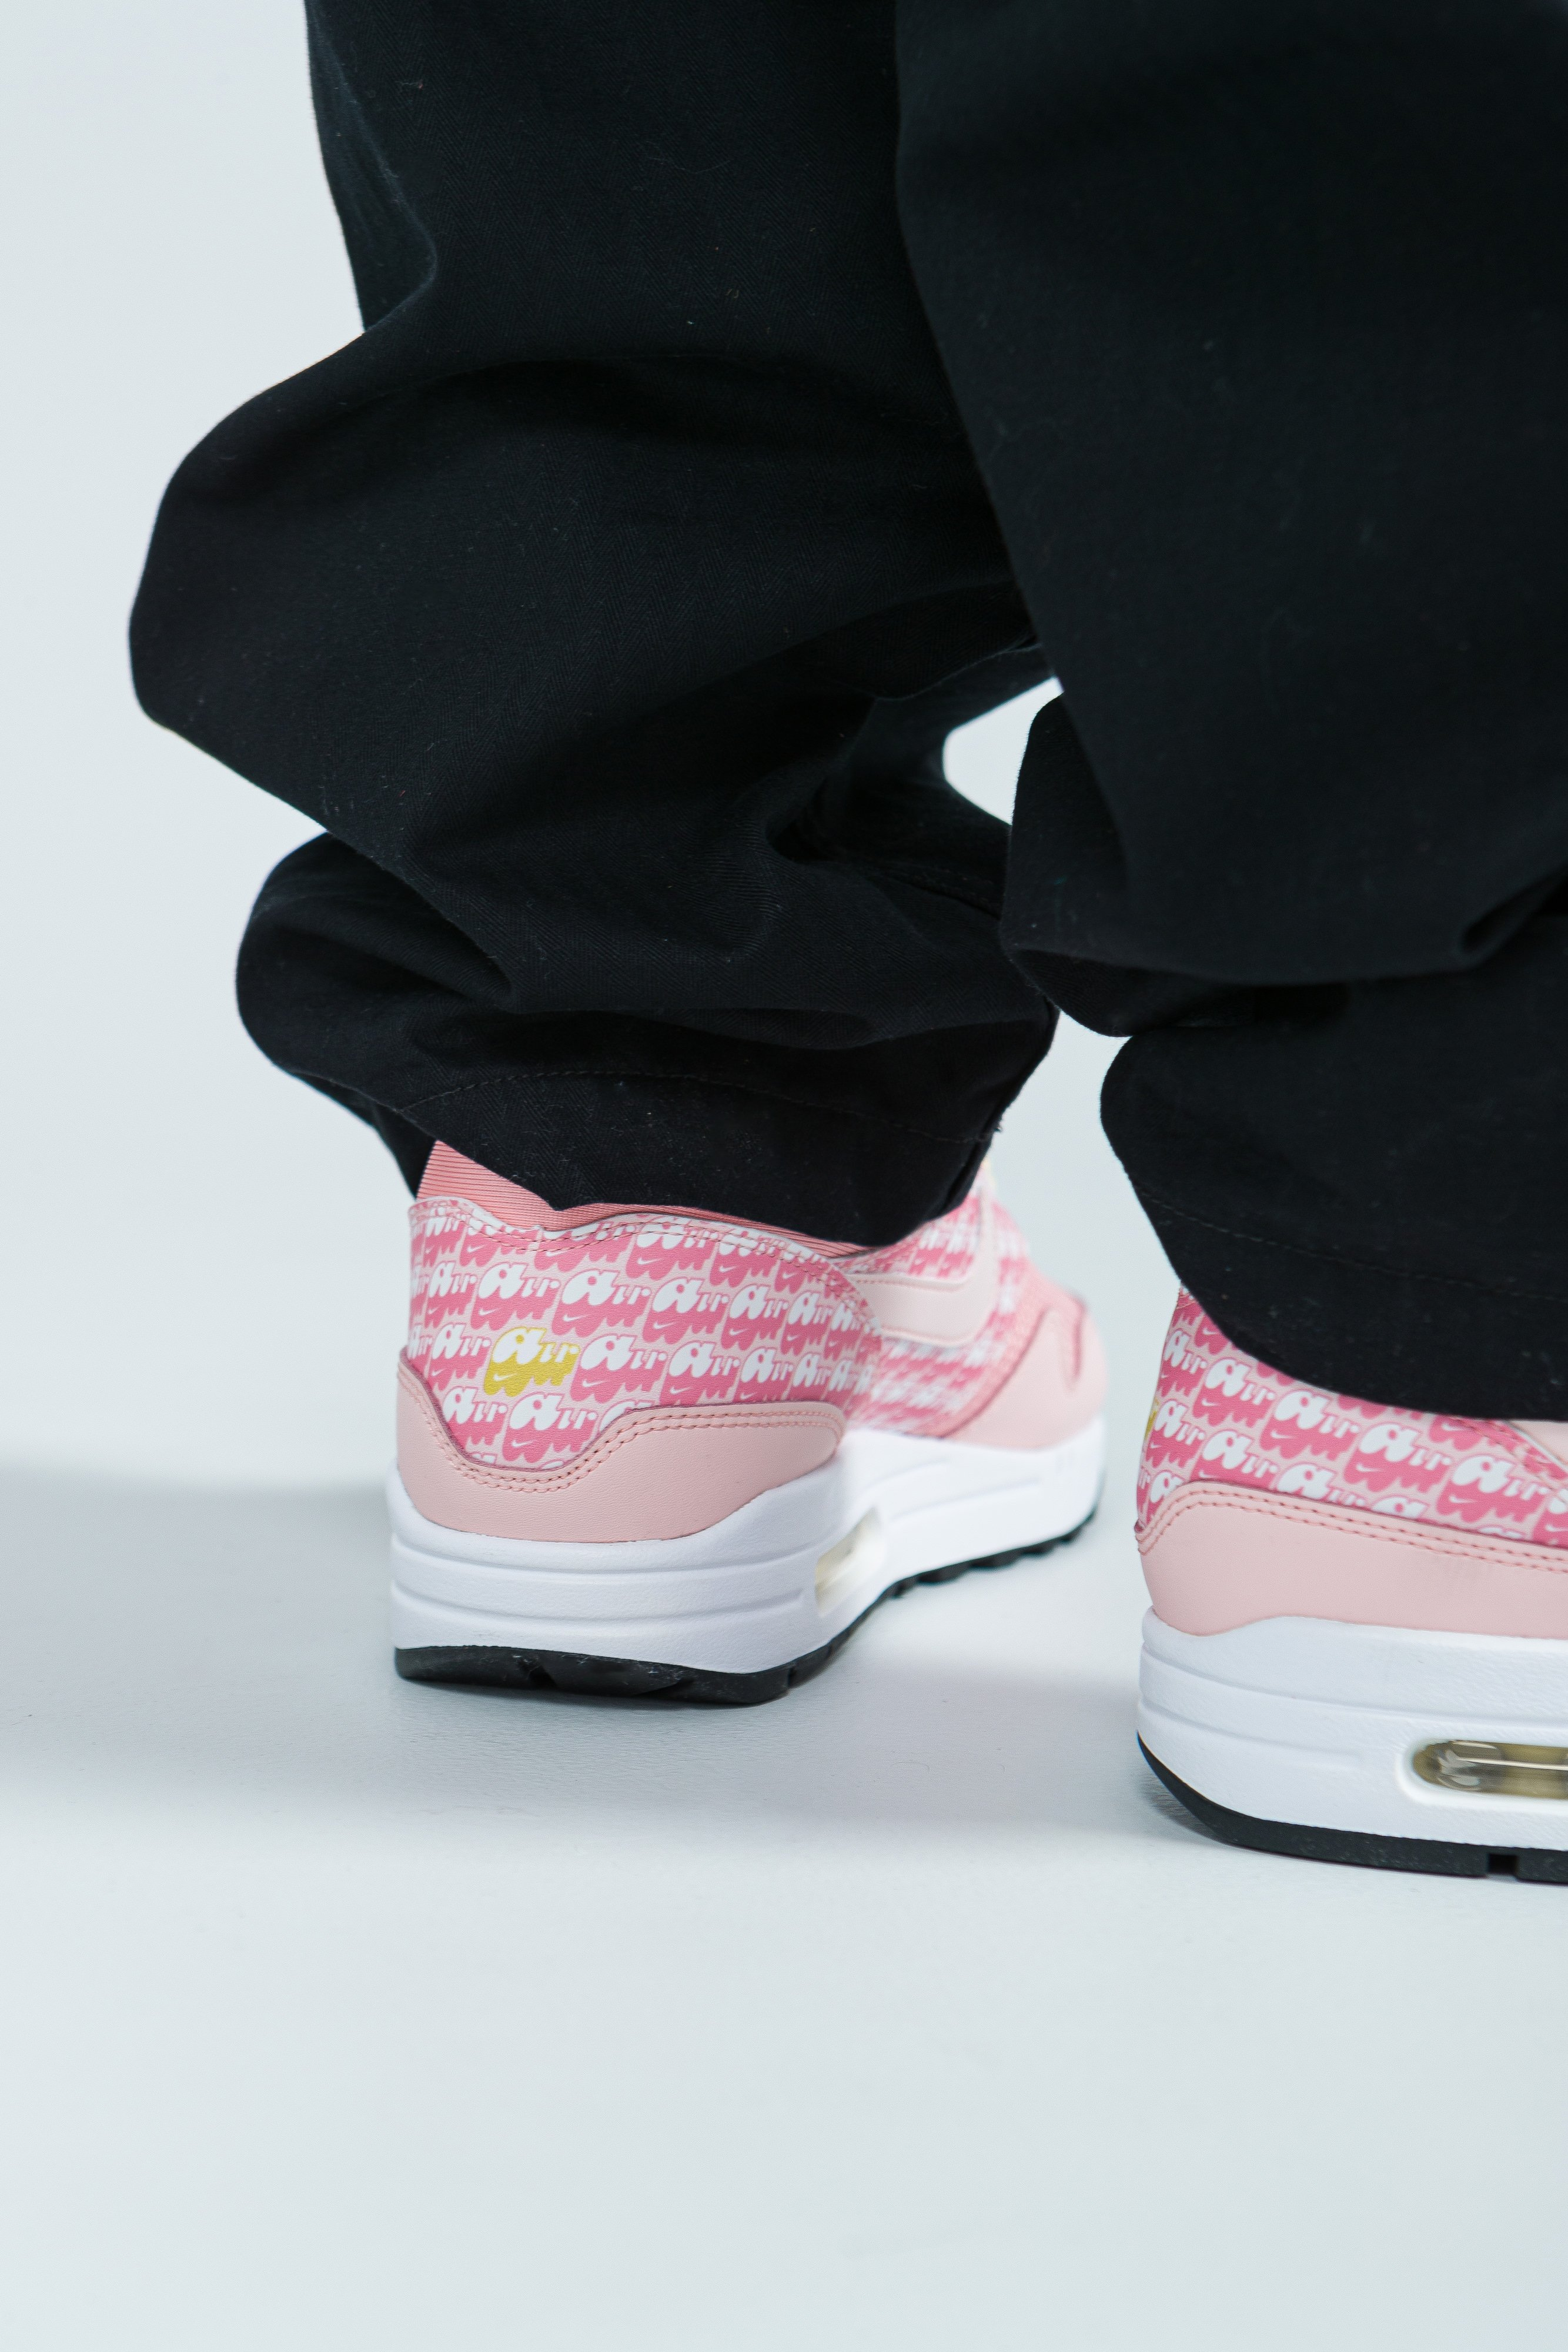 Up There Launches - Nike Air Max 1 'Pink Lemonade'